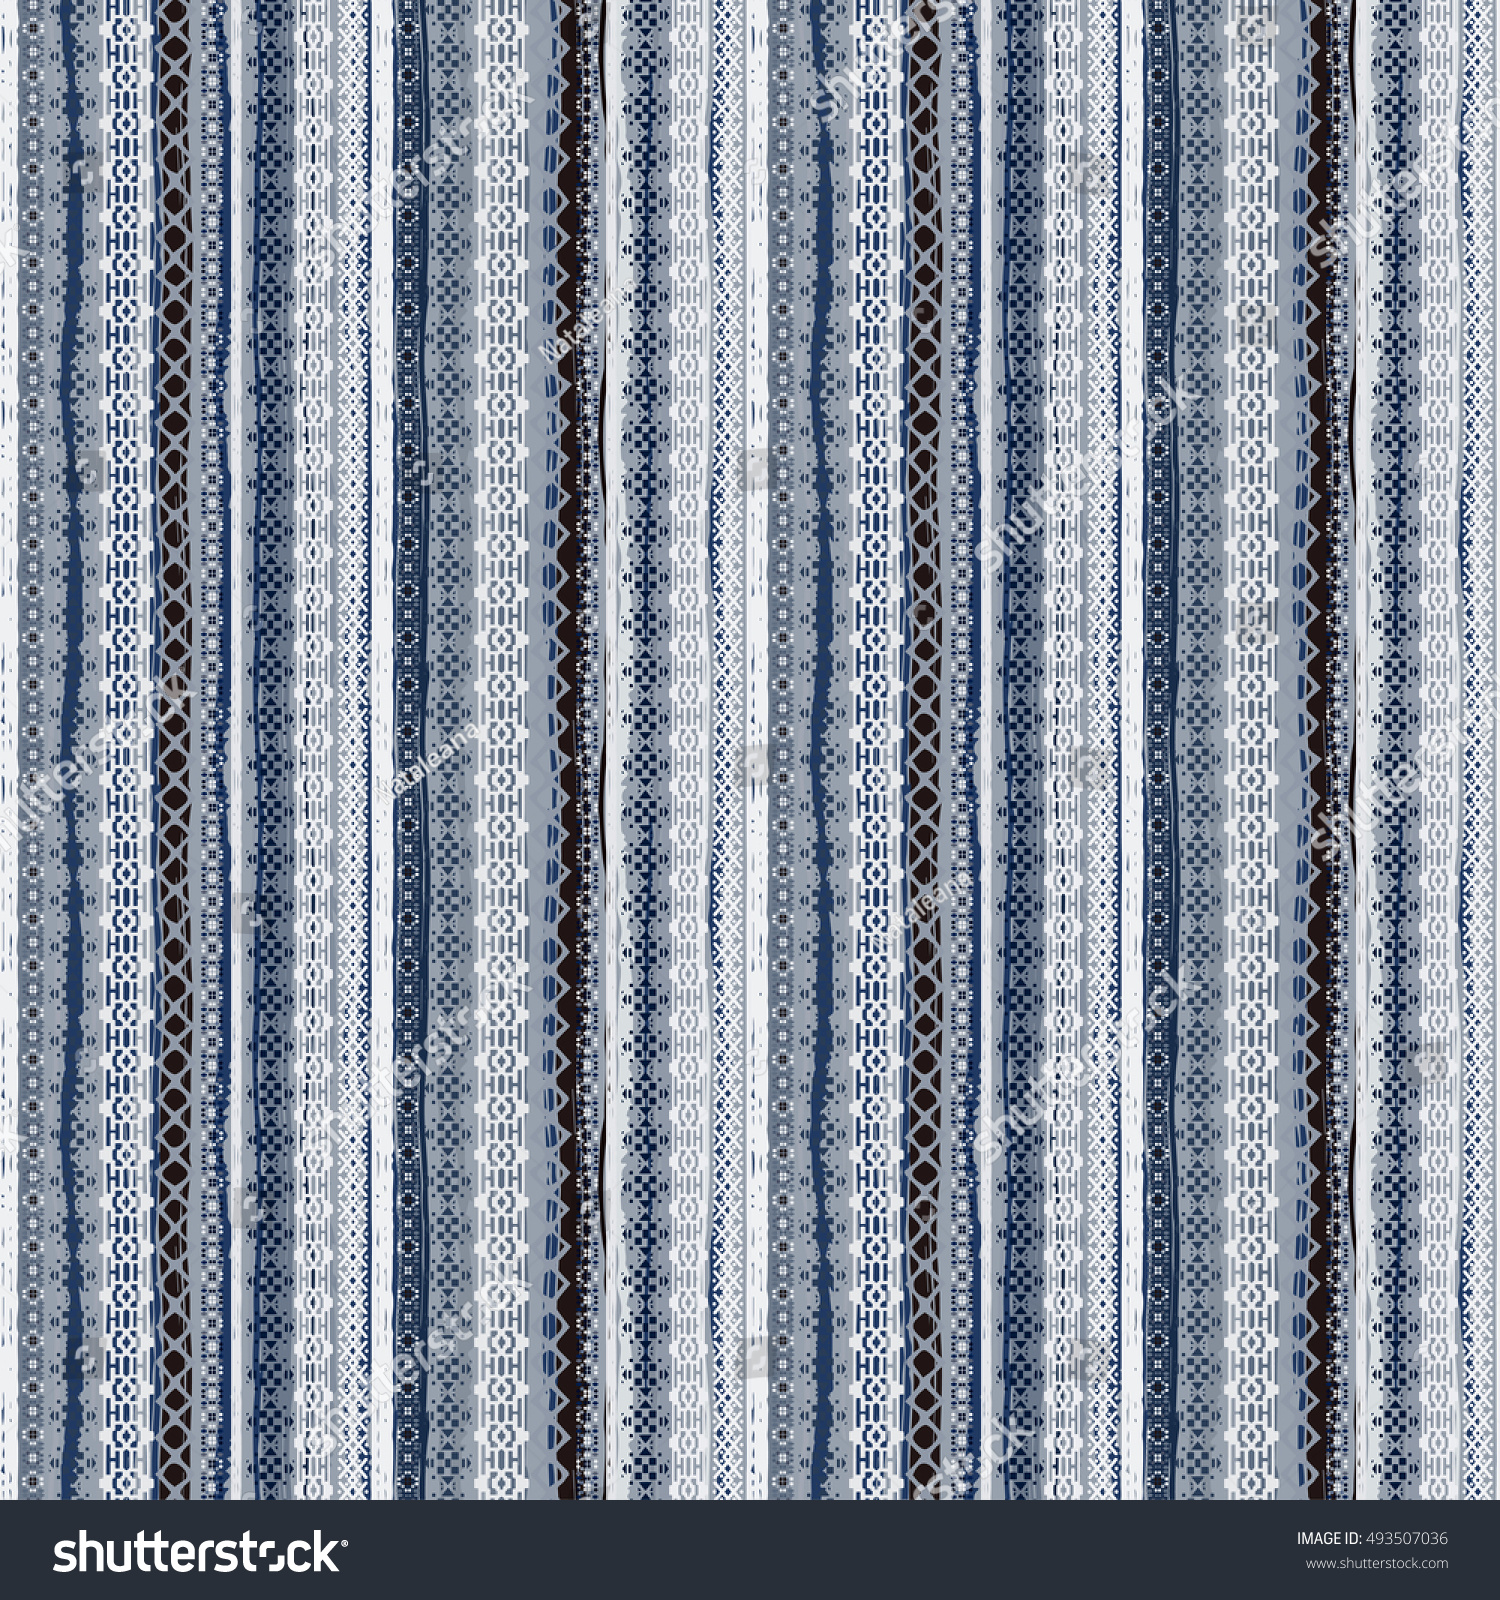 Boho style Ethnic seamless pattern Tribal art print Old abstract striped background texture